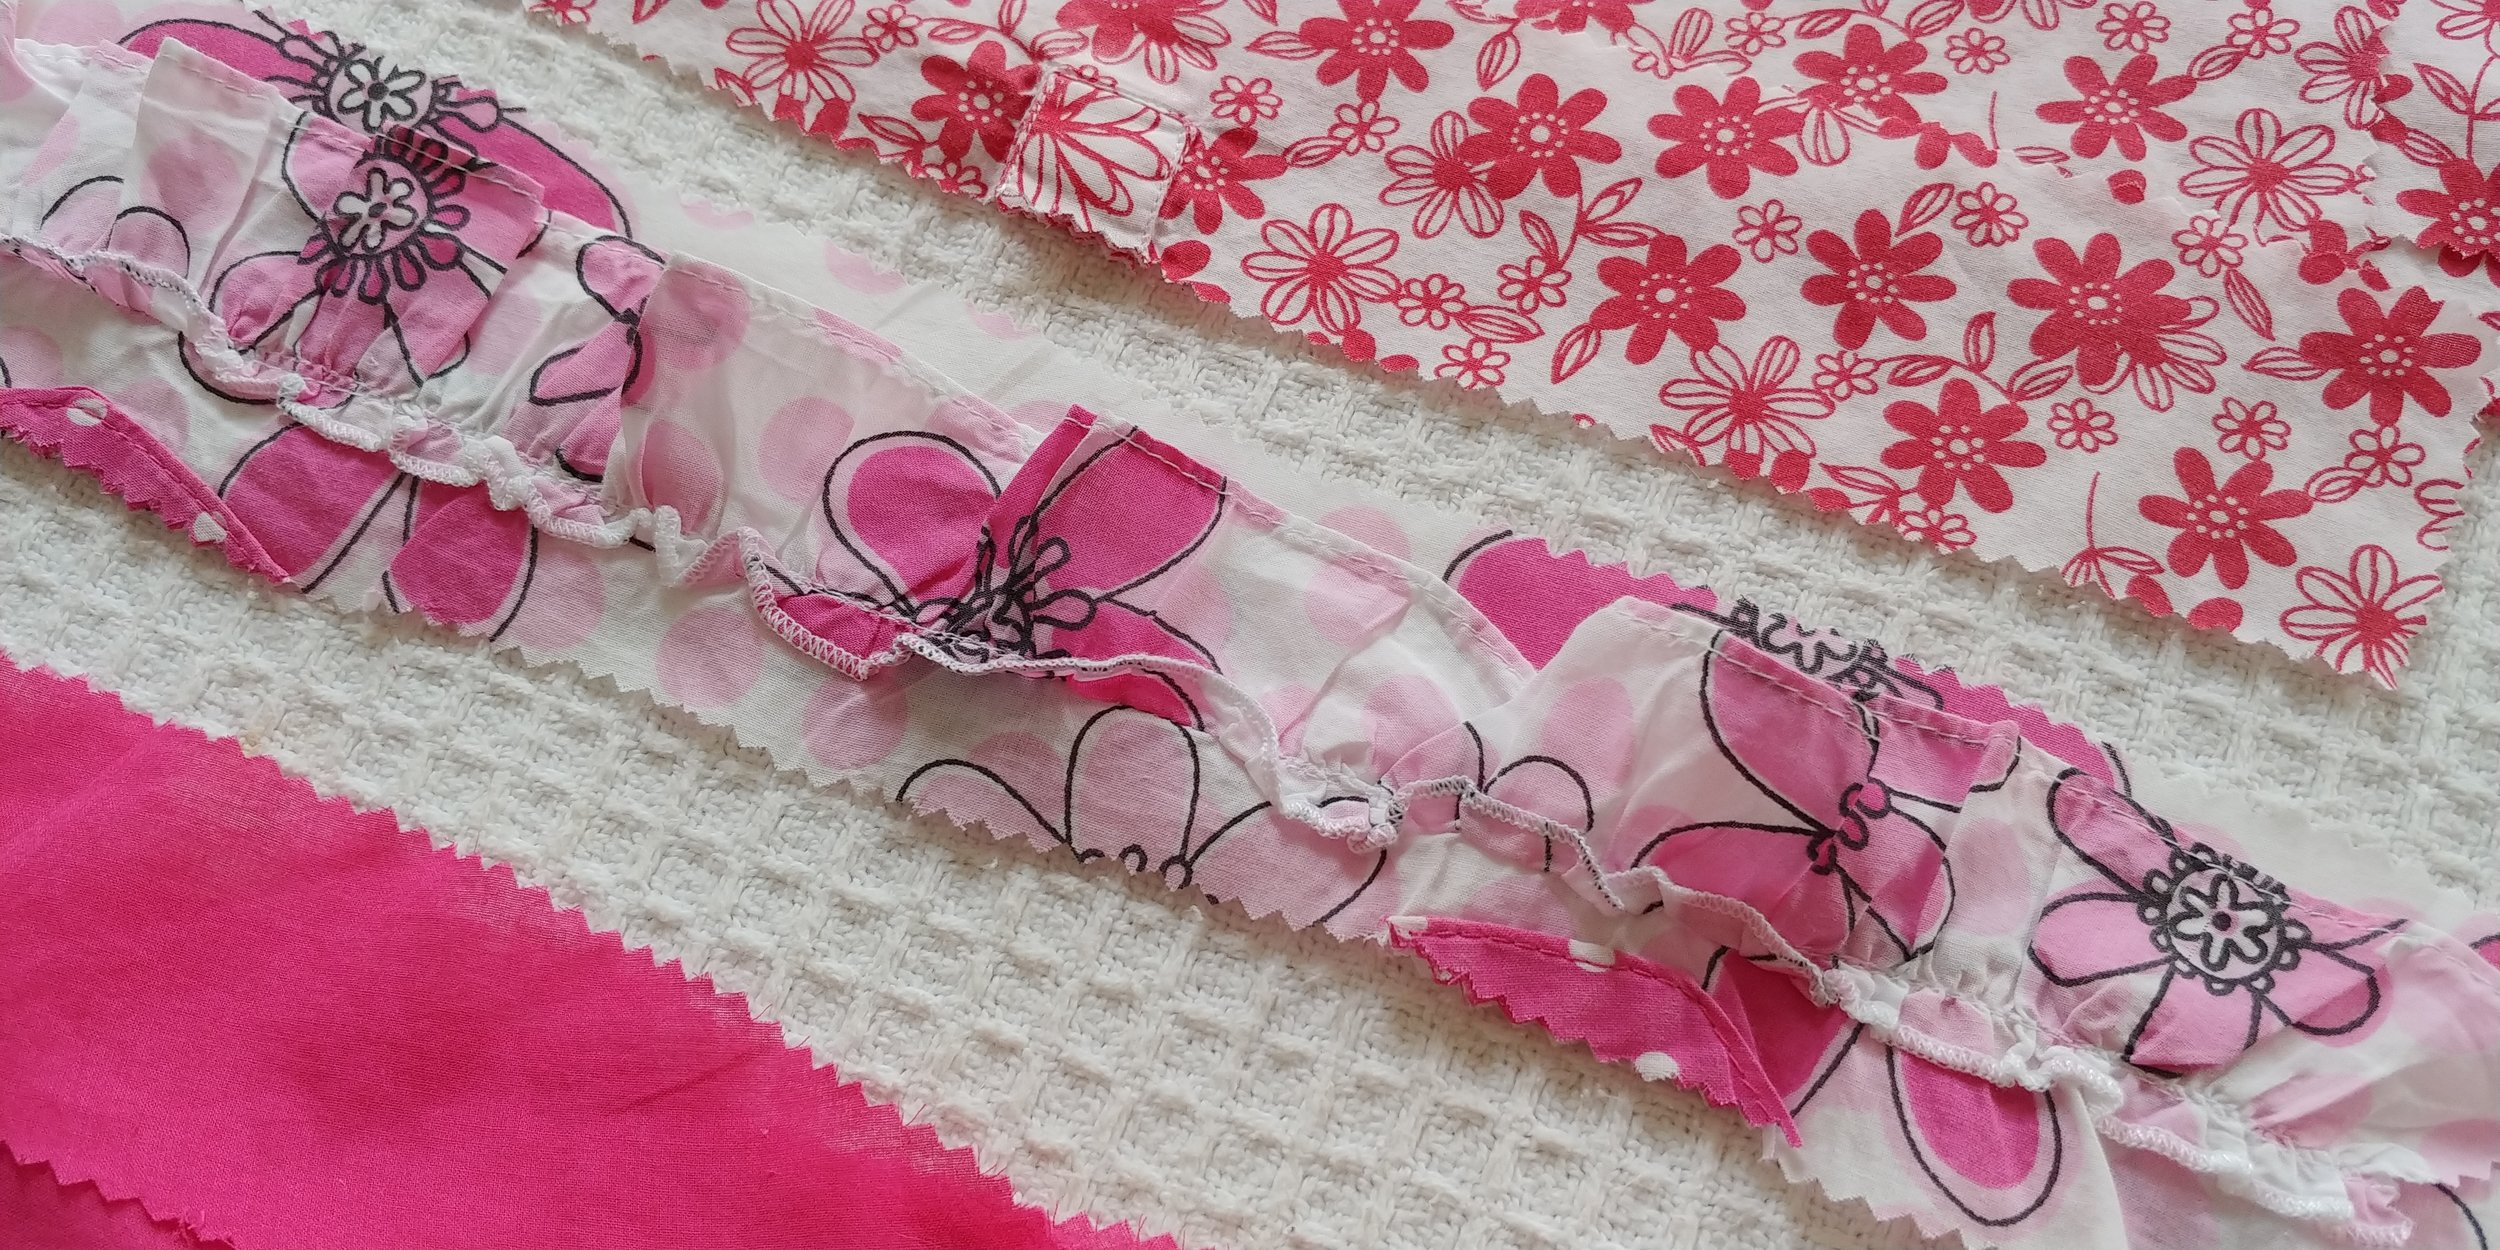 The ruffle strip came from the bottom of a 12-18 month old baby top.